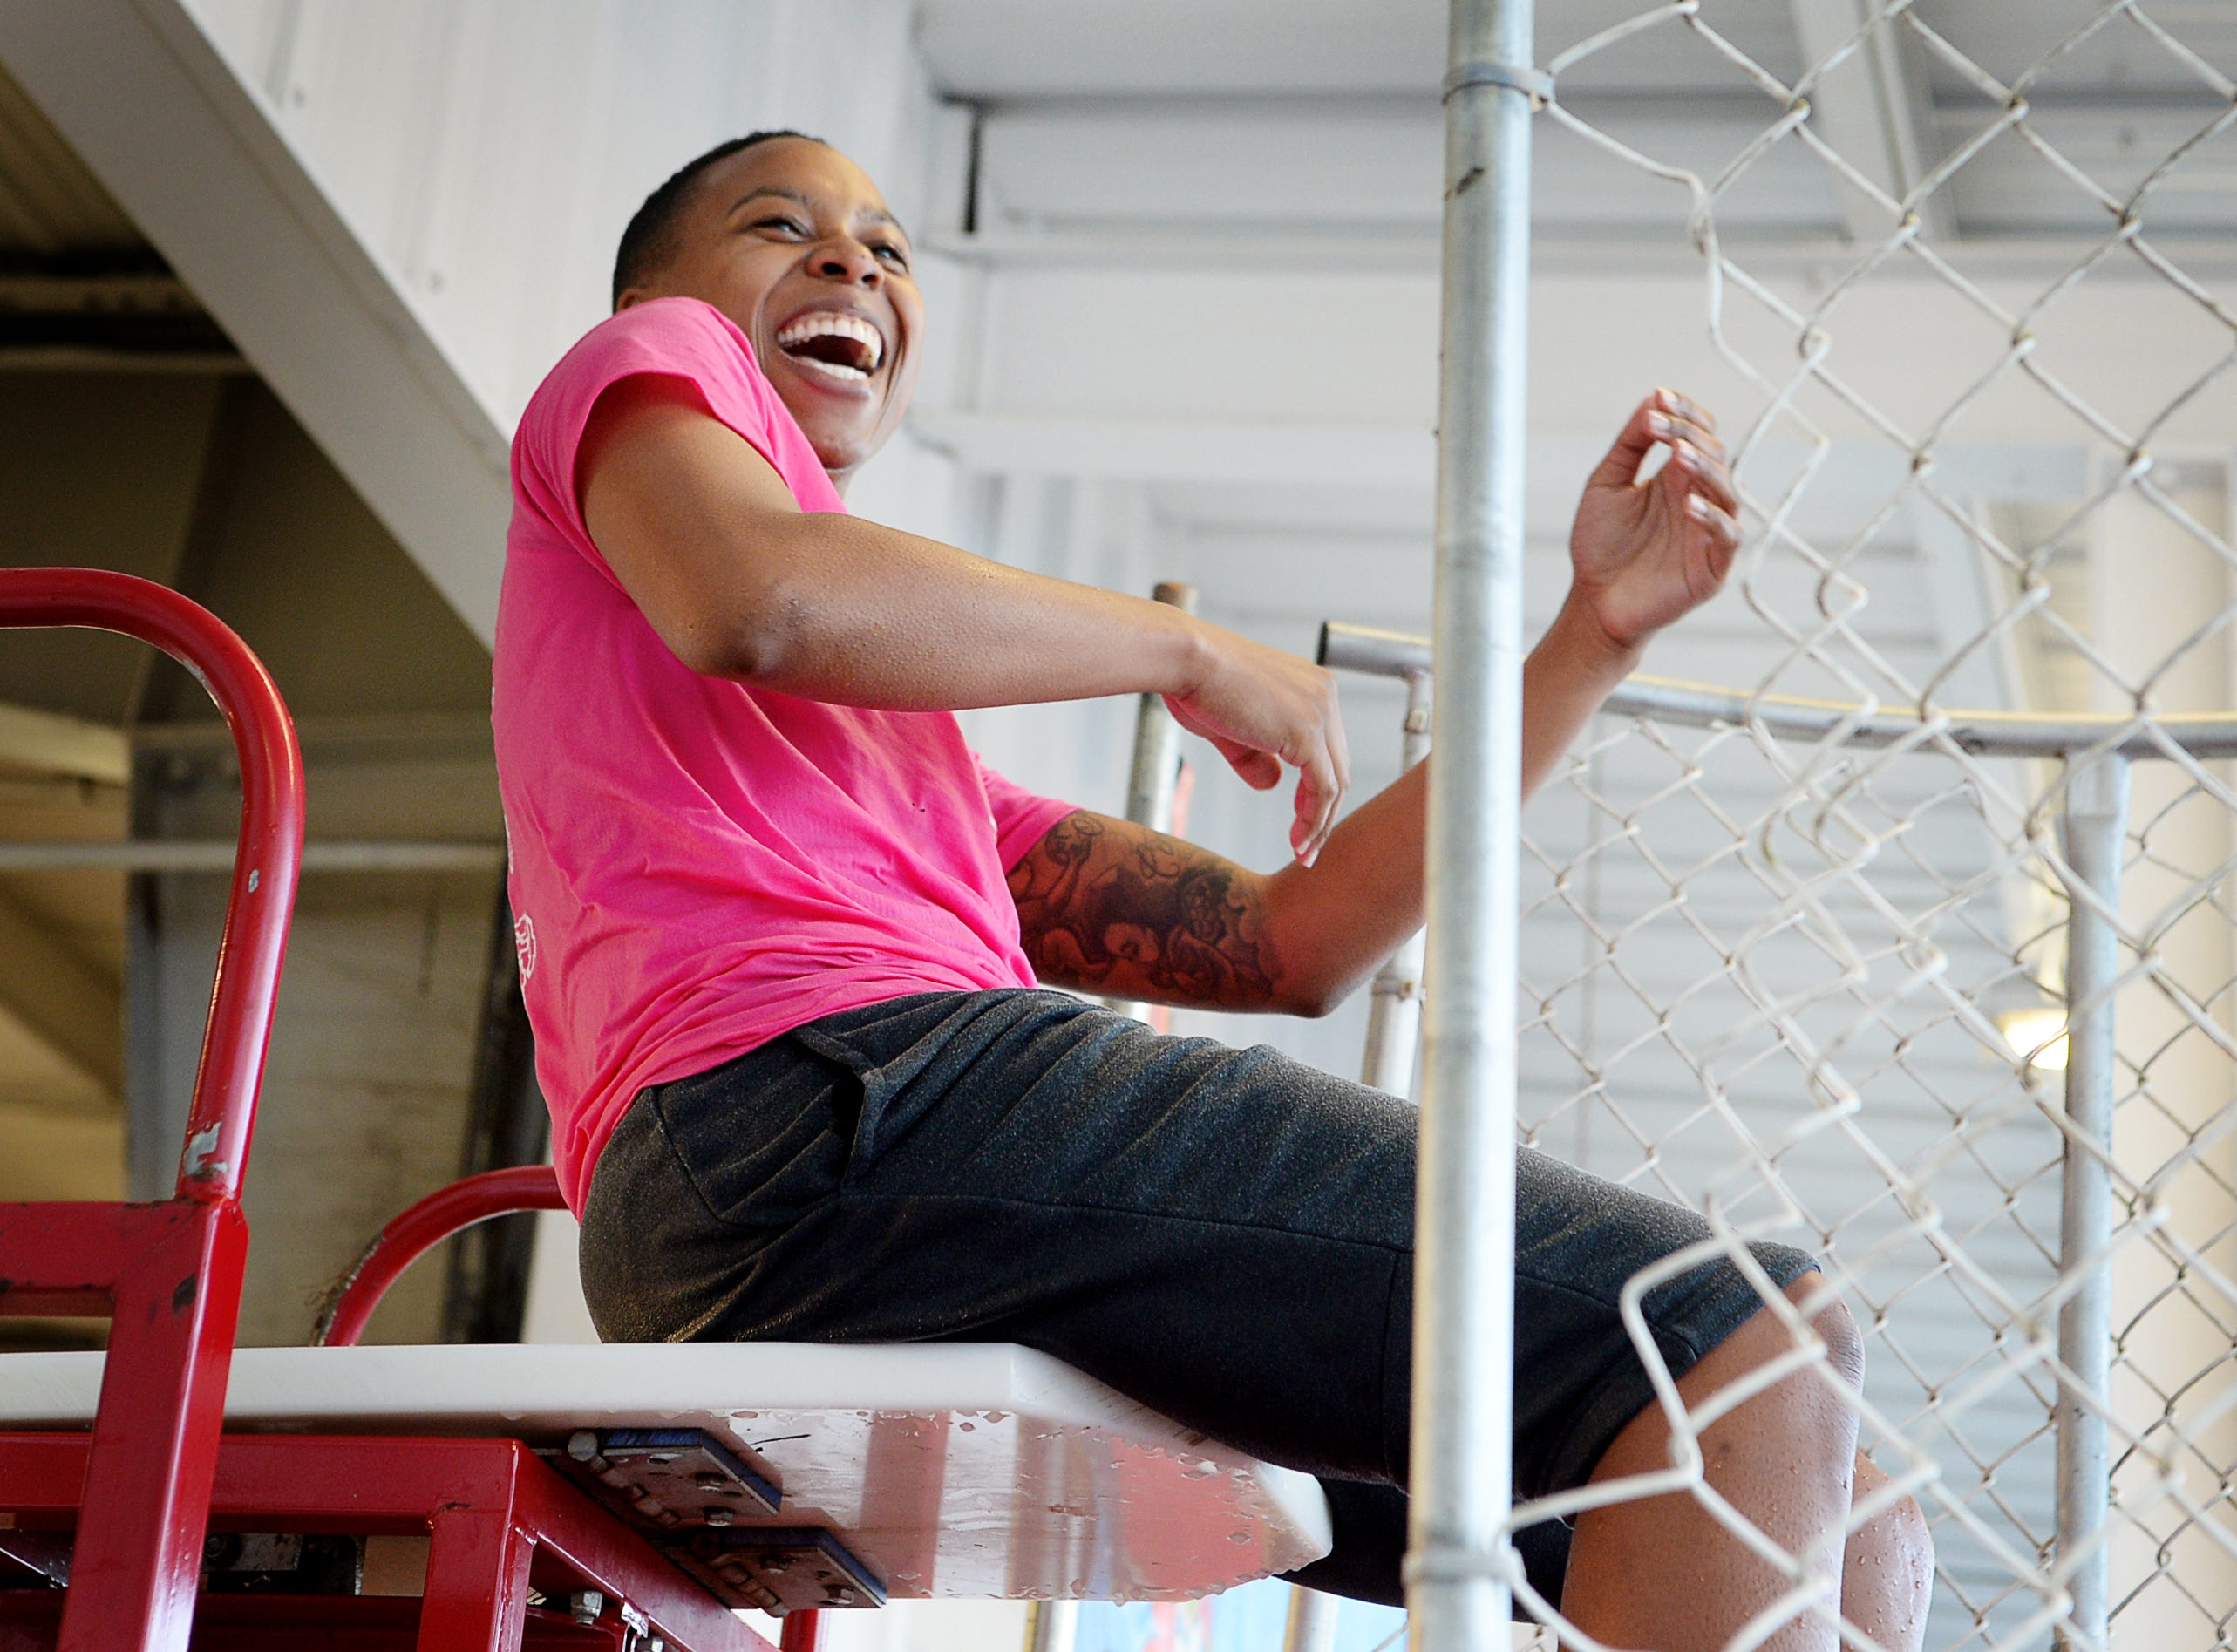 Lauren Allen laughs as people test their aim at the dunk tank at the #IDrive4 breast cancer fundraiser benefitting The Hope Chest for Women at Asheville Chevrolet Oct. 18, 2018. During the month of October, the dealership is donating $5 for every #AshevilleChevyDrives4 hashtag on Instagram and Twitter.